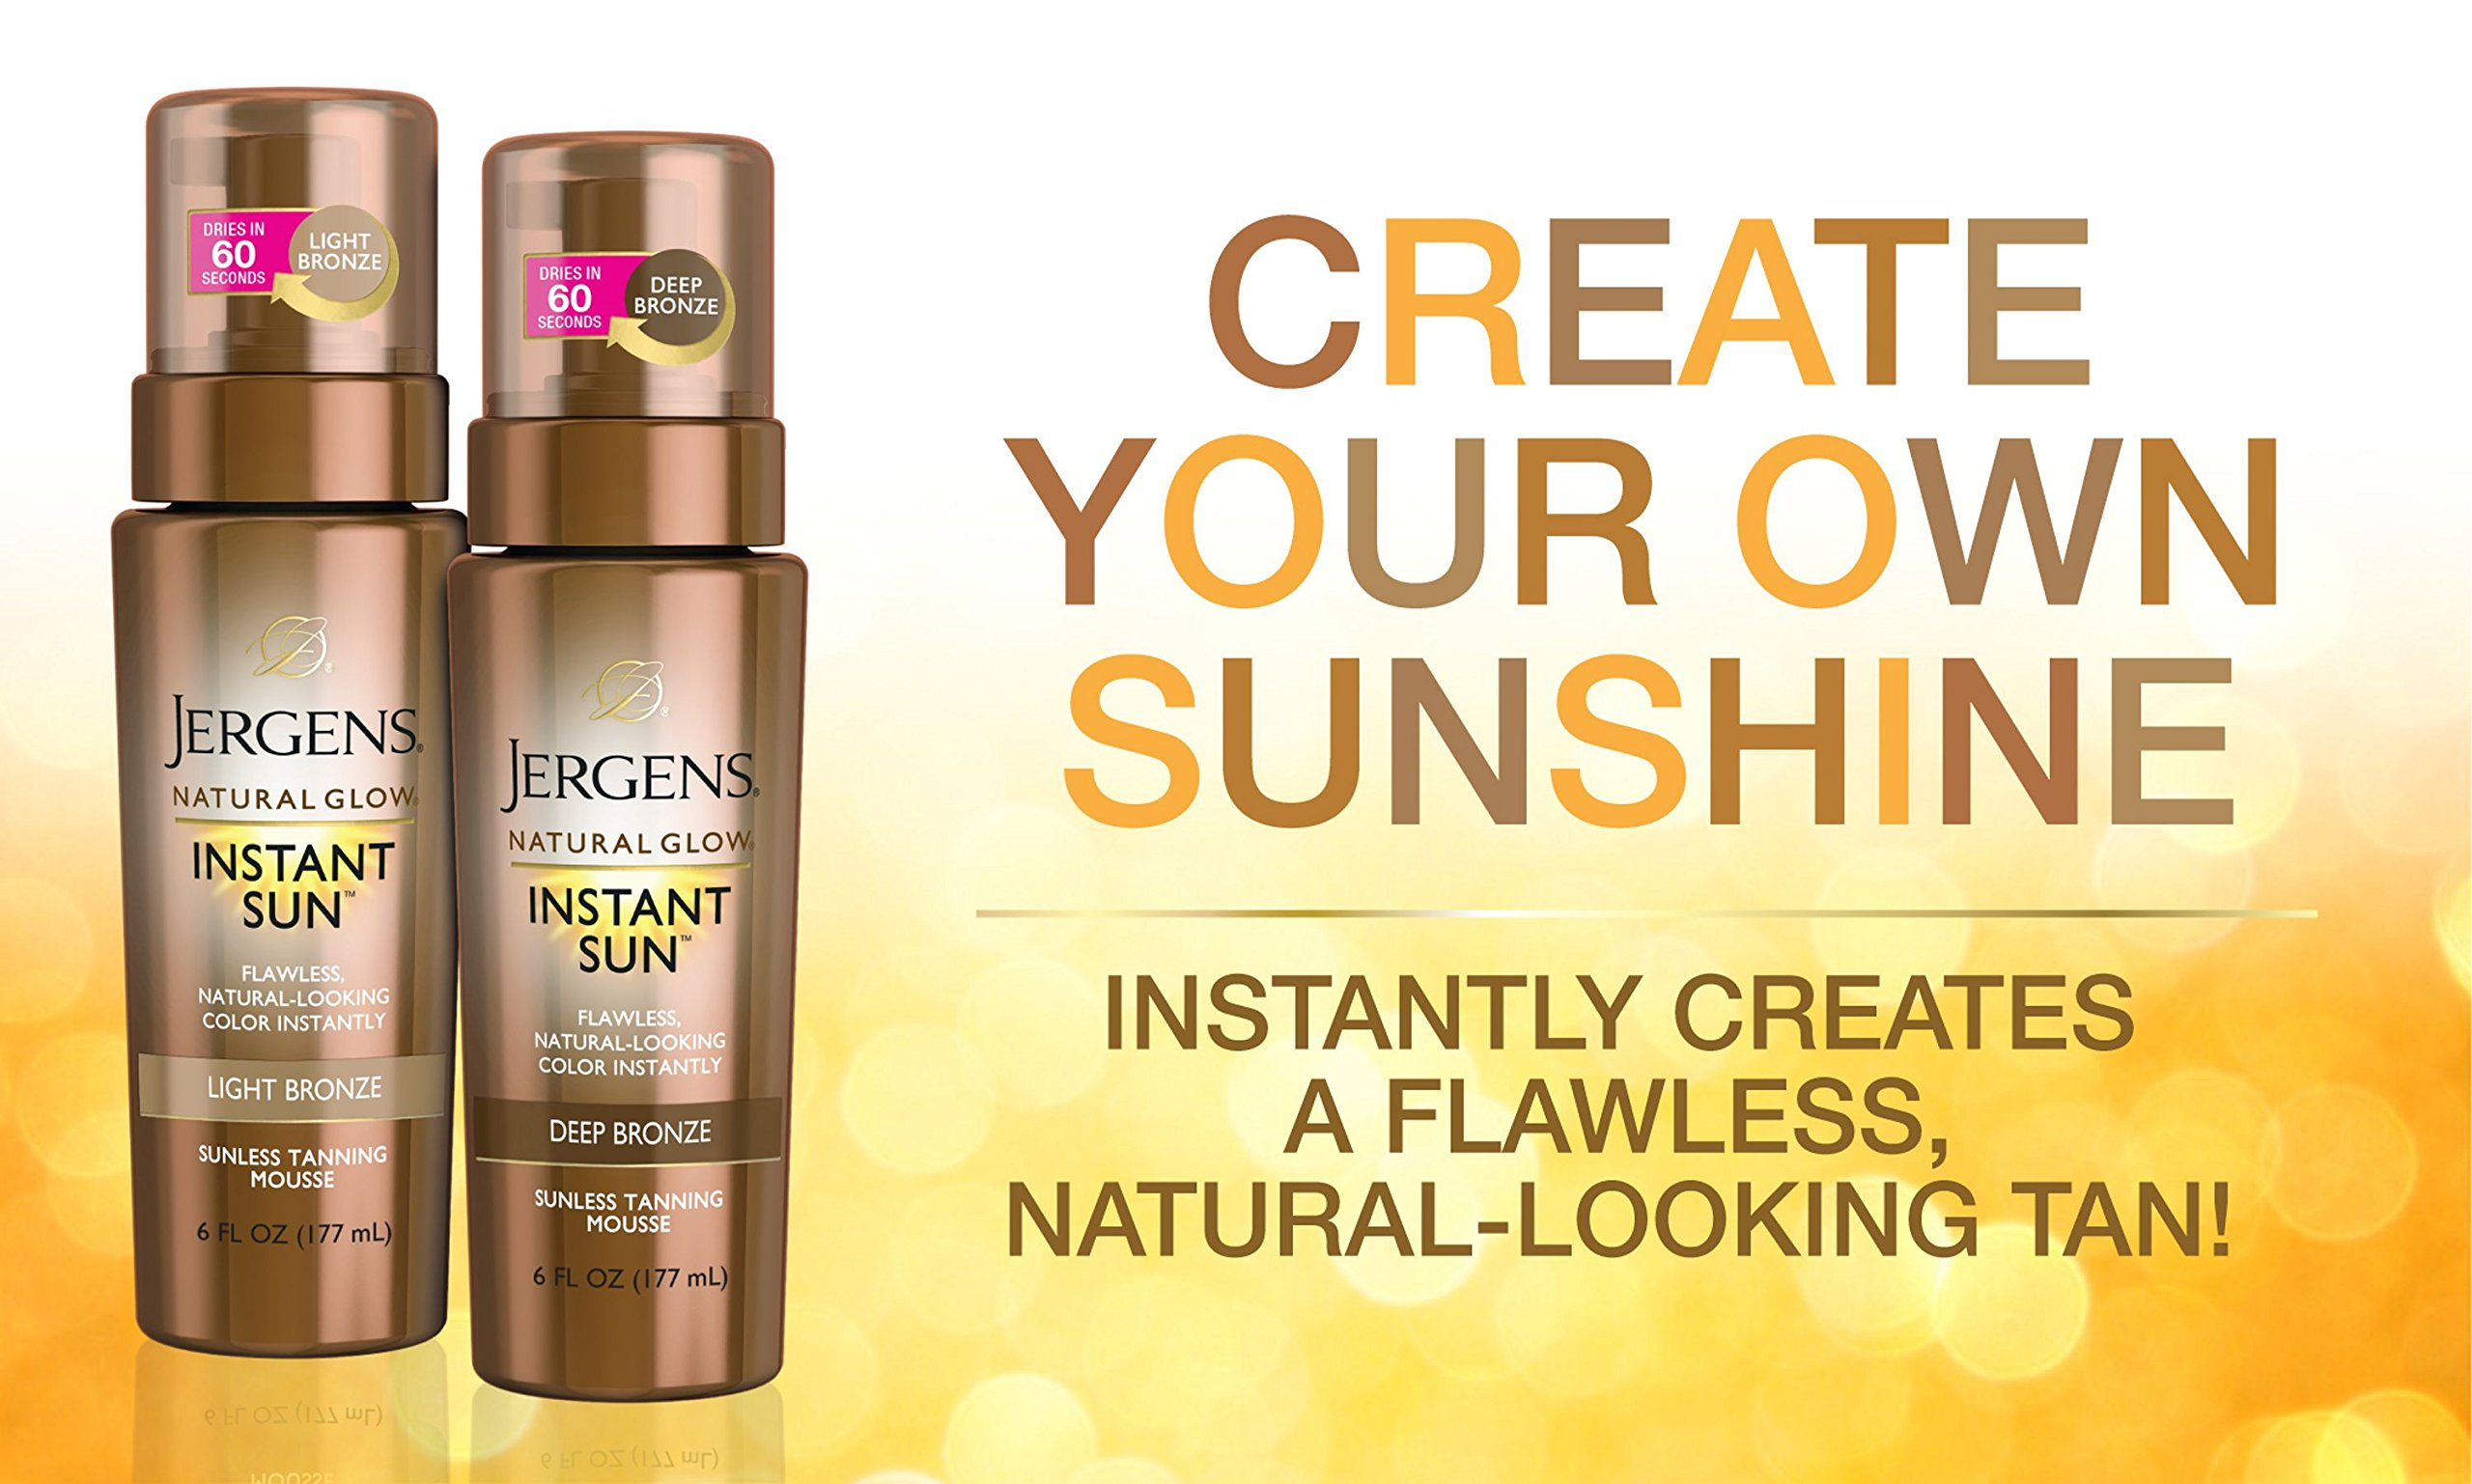 Jergens Natural Glow Instant Sun Sunless Tanning Mousse for Body, Light Bronze, 6 Ounces by Jergens (Image #3)